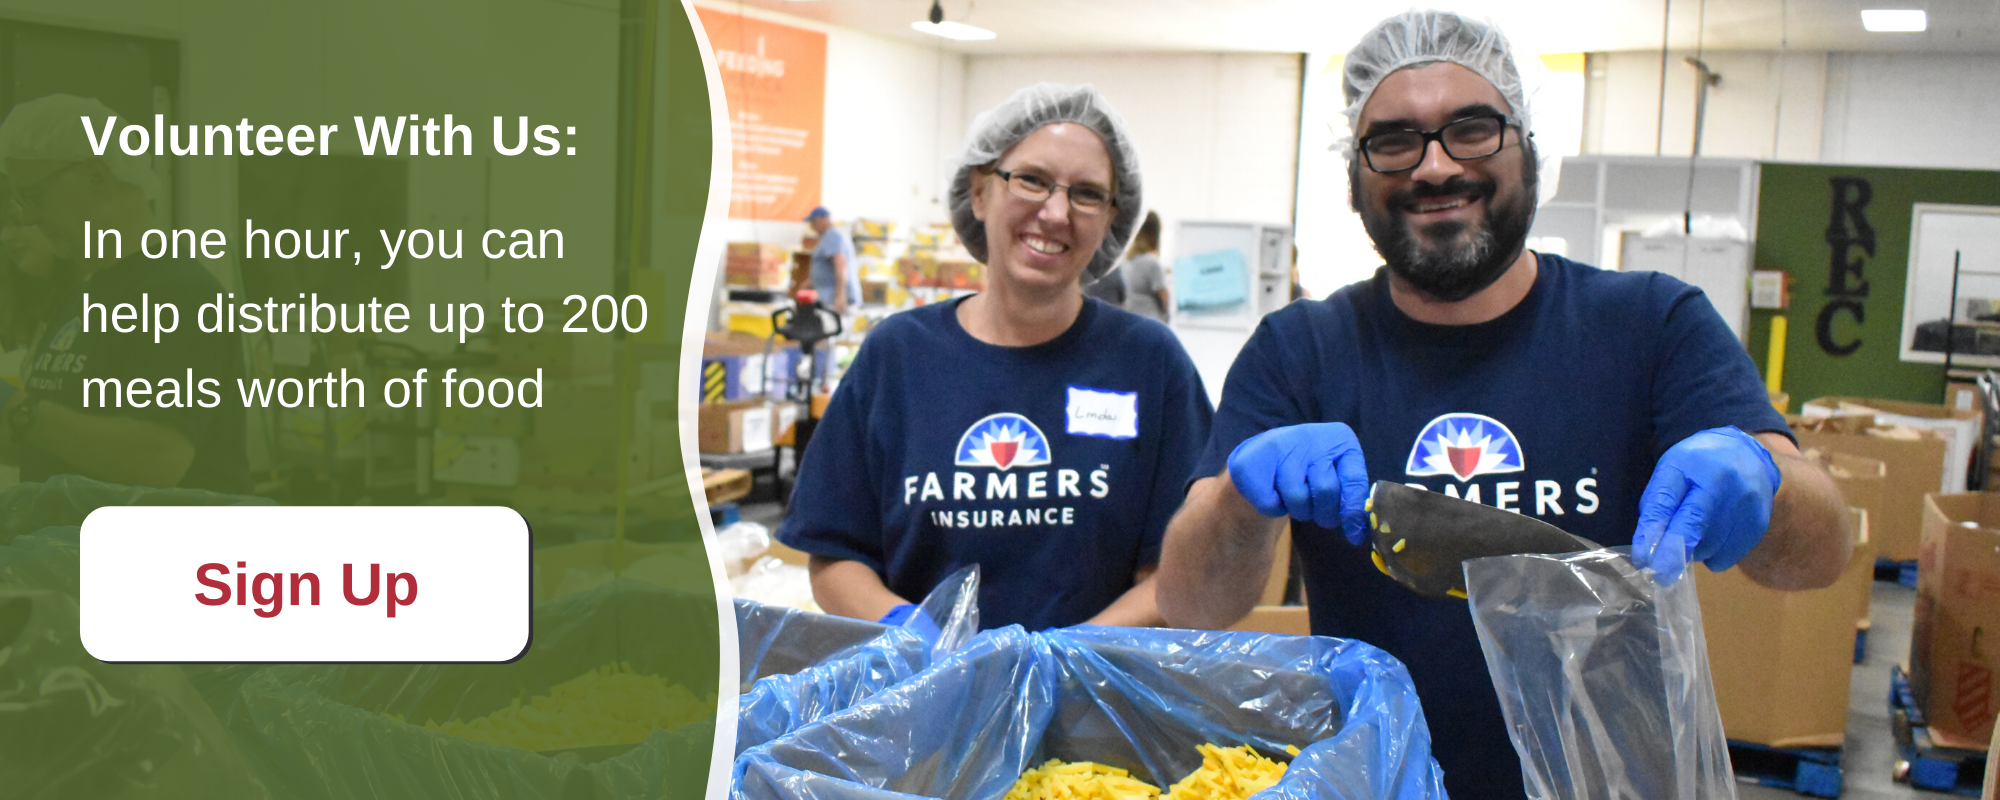 Volunteer with us. In one hour, you can help distribute up to 200 meals worth of food. Sign up.